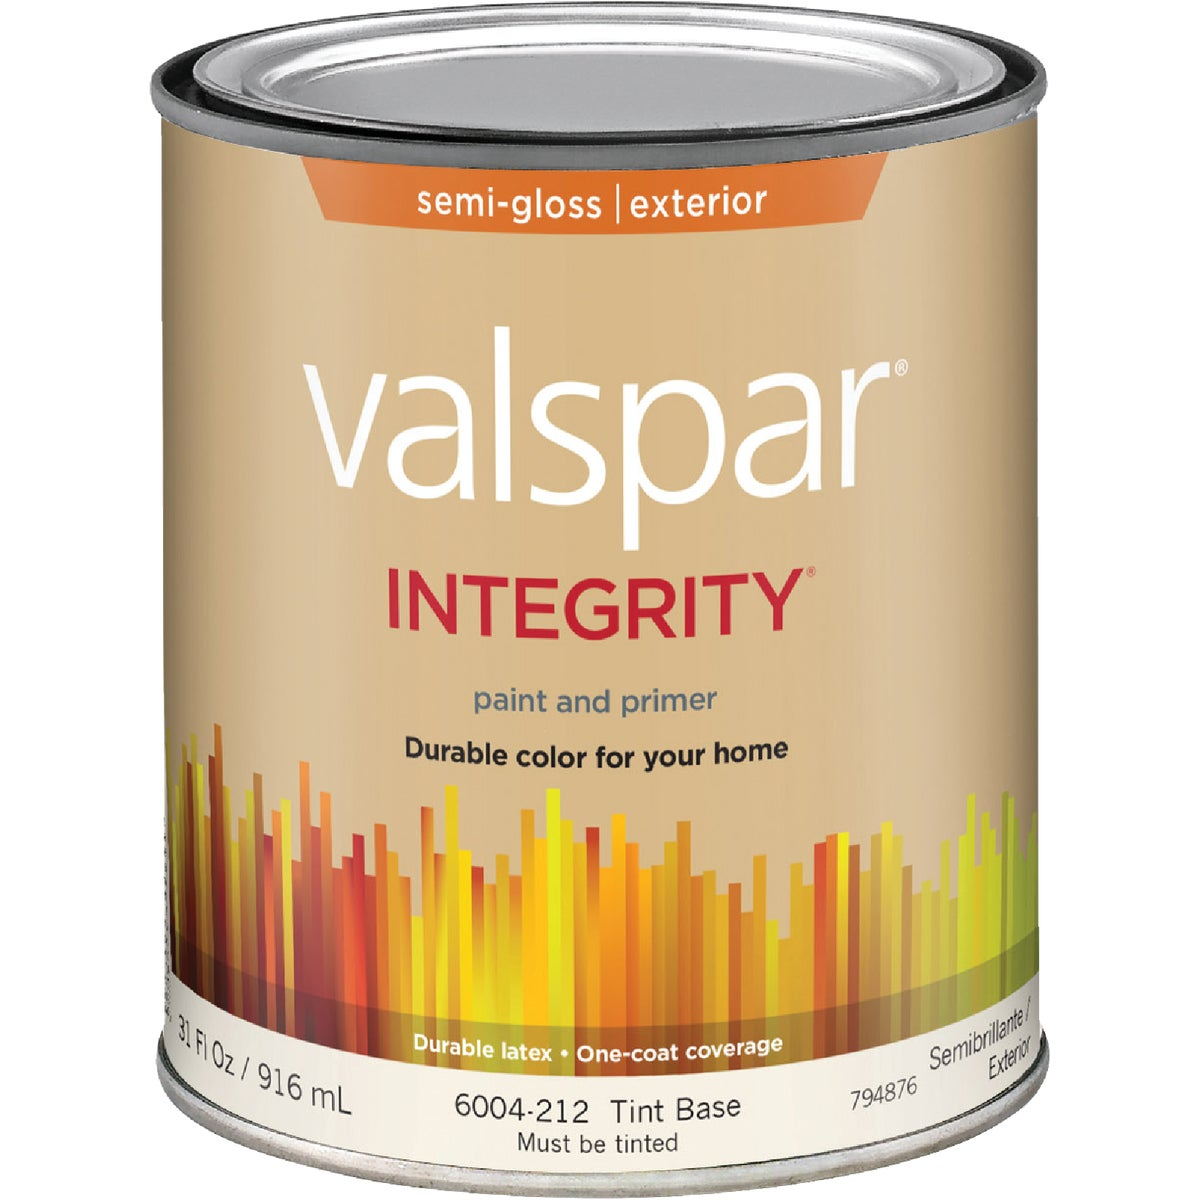 EXT S/G TINT BS PAINT - 004.6004212.005 by Valspar Corp